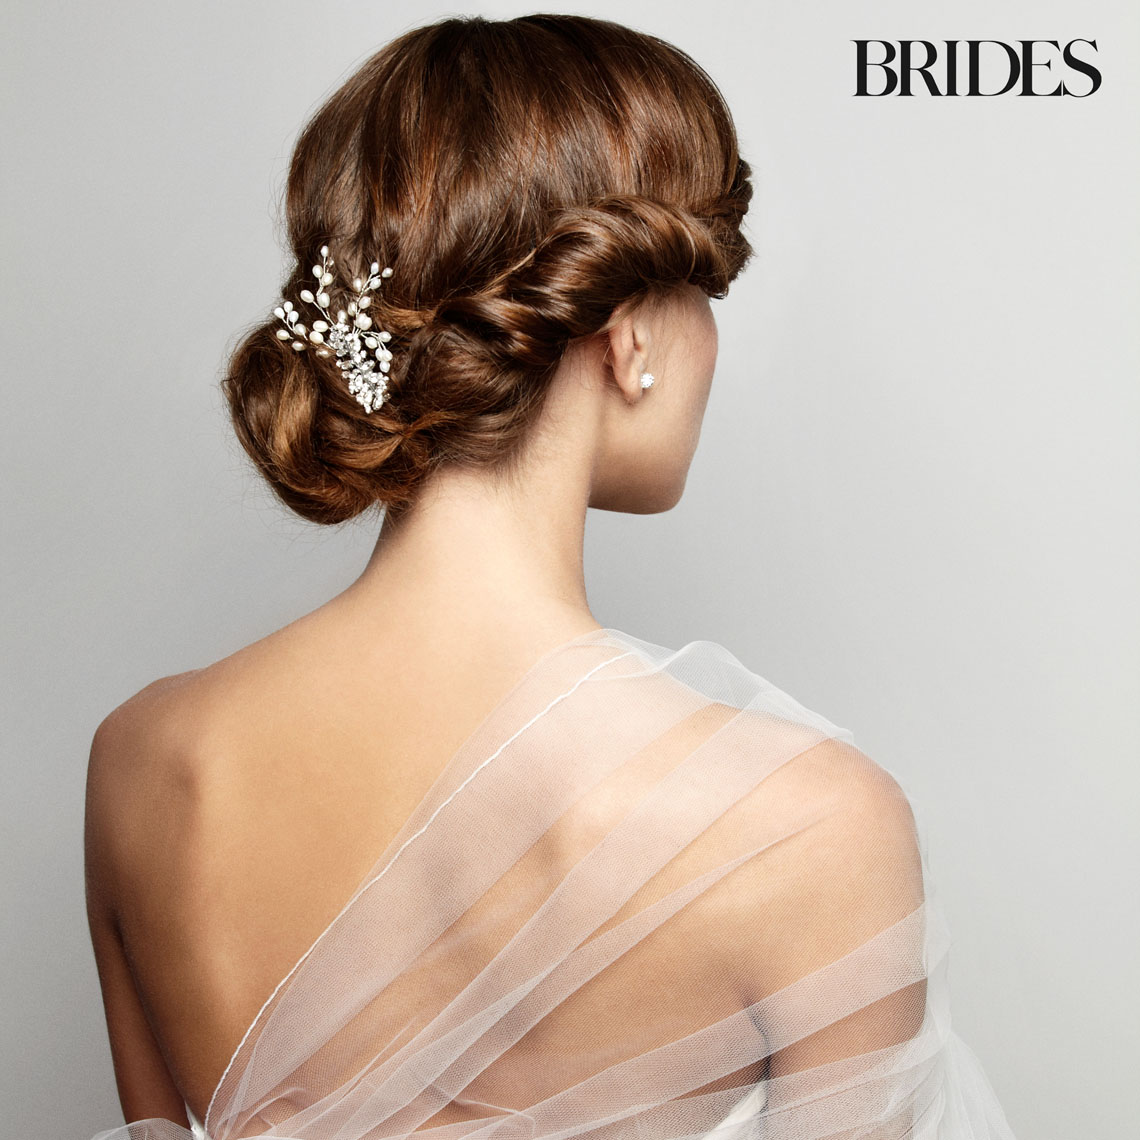 FRANKLIN THOMPSON FOR BRIDES.COM